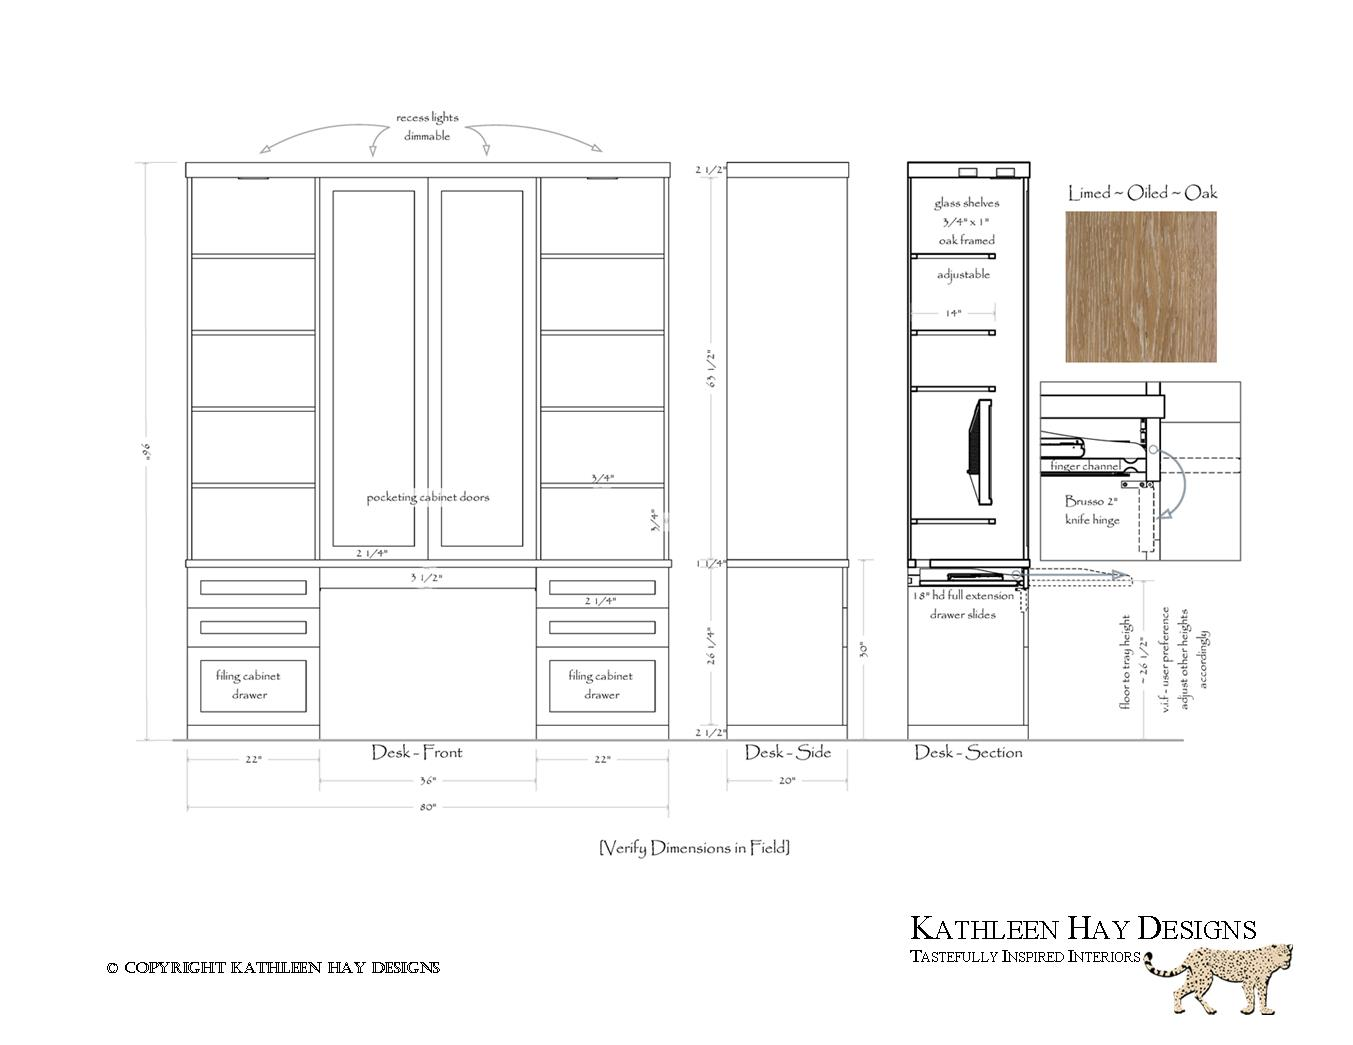 Interior architecture drafting kathleen hay designs for Interior design 02554